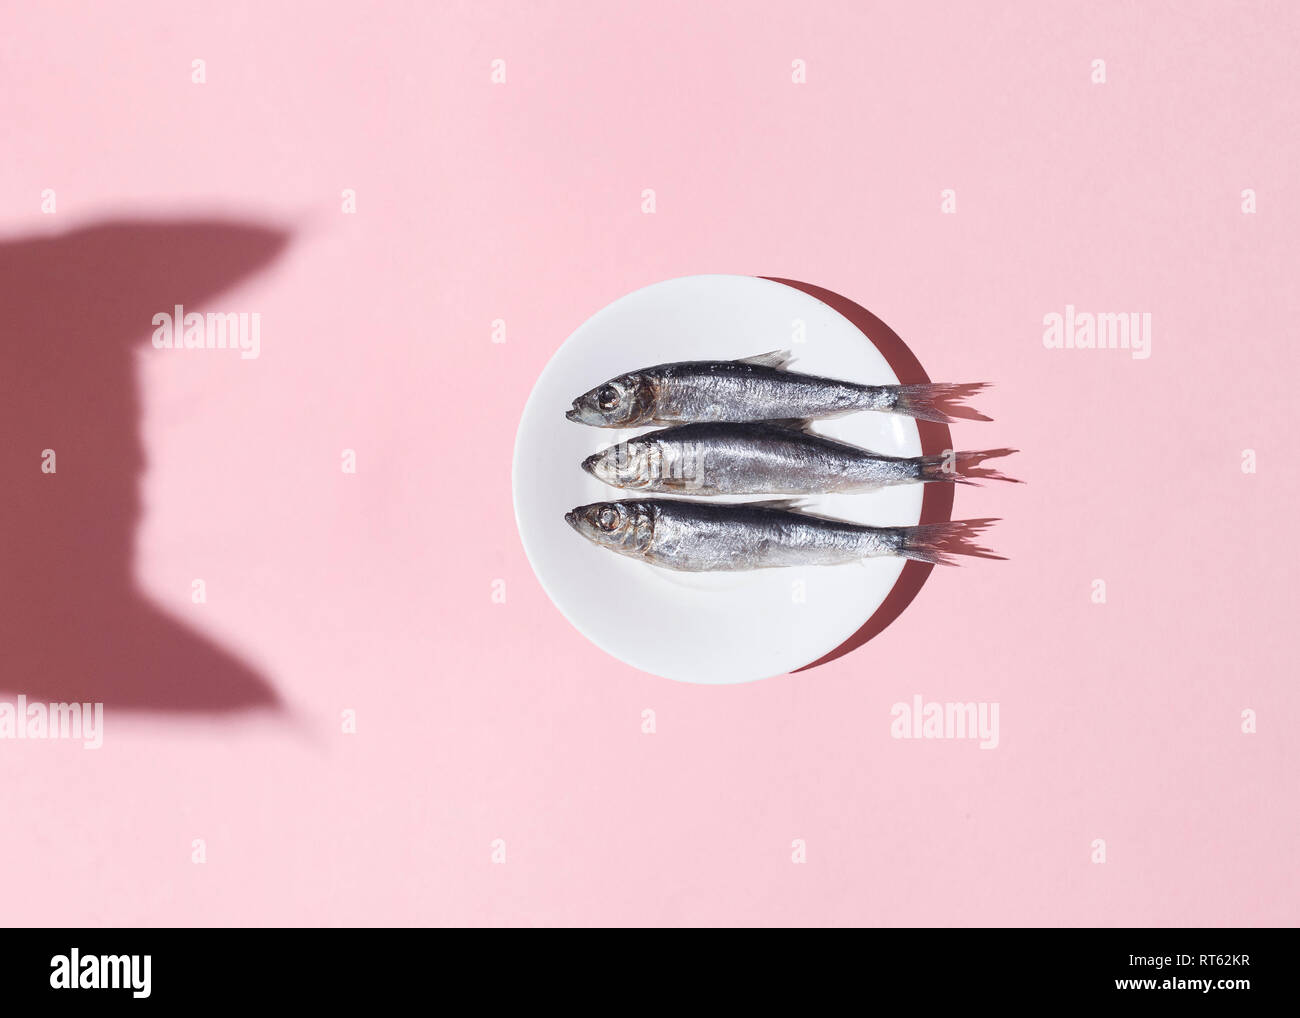 Cat vs fish. Curious cat shadow and plate with silver fish on pink background. Hard light. Top view. Flat lay. Curiousity and food concept. Stock Photo